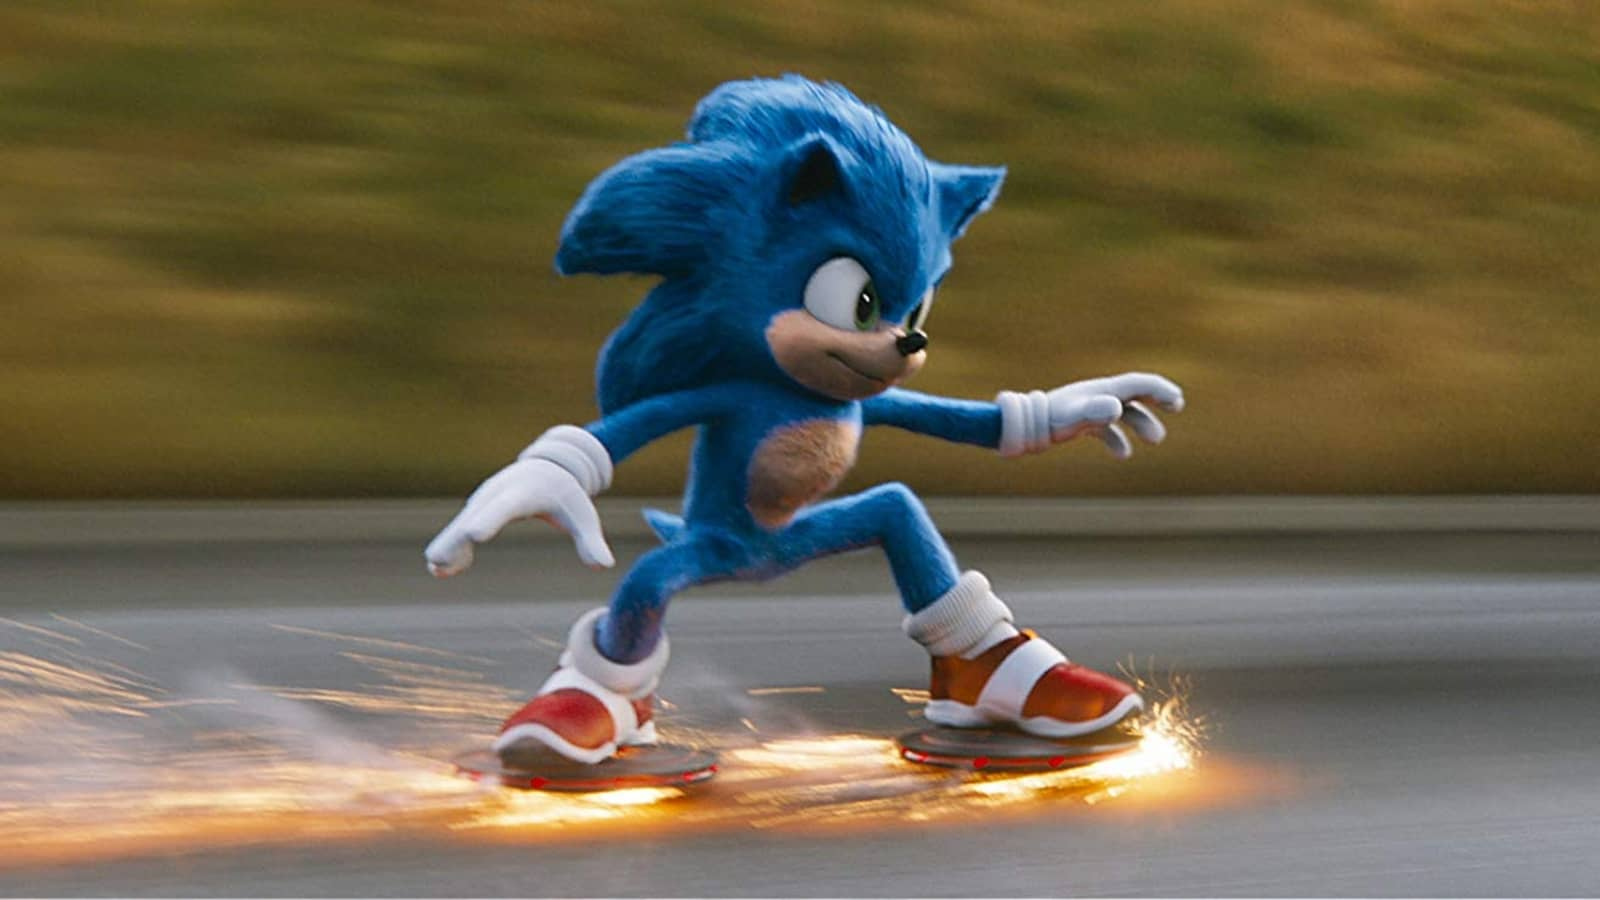 Weekend Box Office Sonic The Hedgehog Record Opening